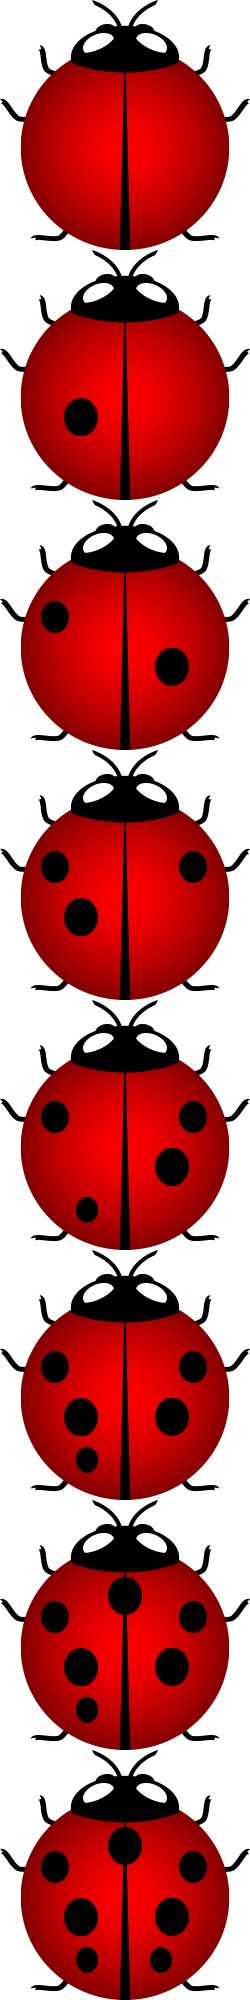 lucky lady bug by horoscope com get free divination games just for fun